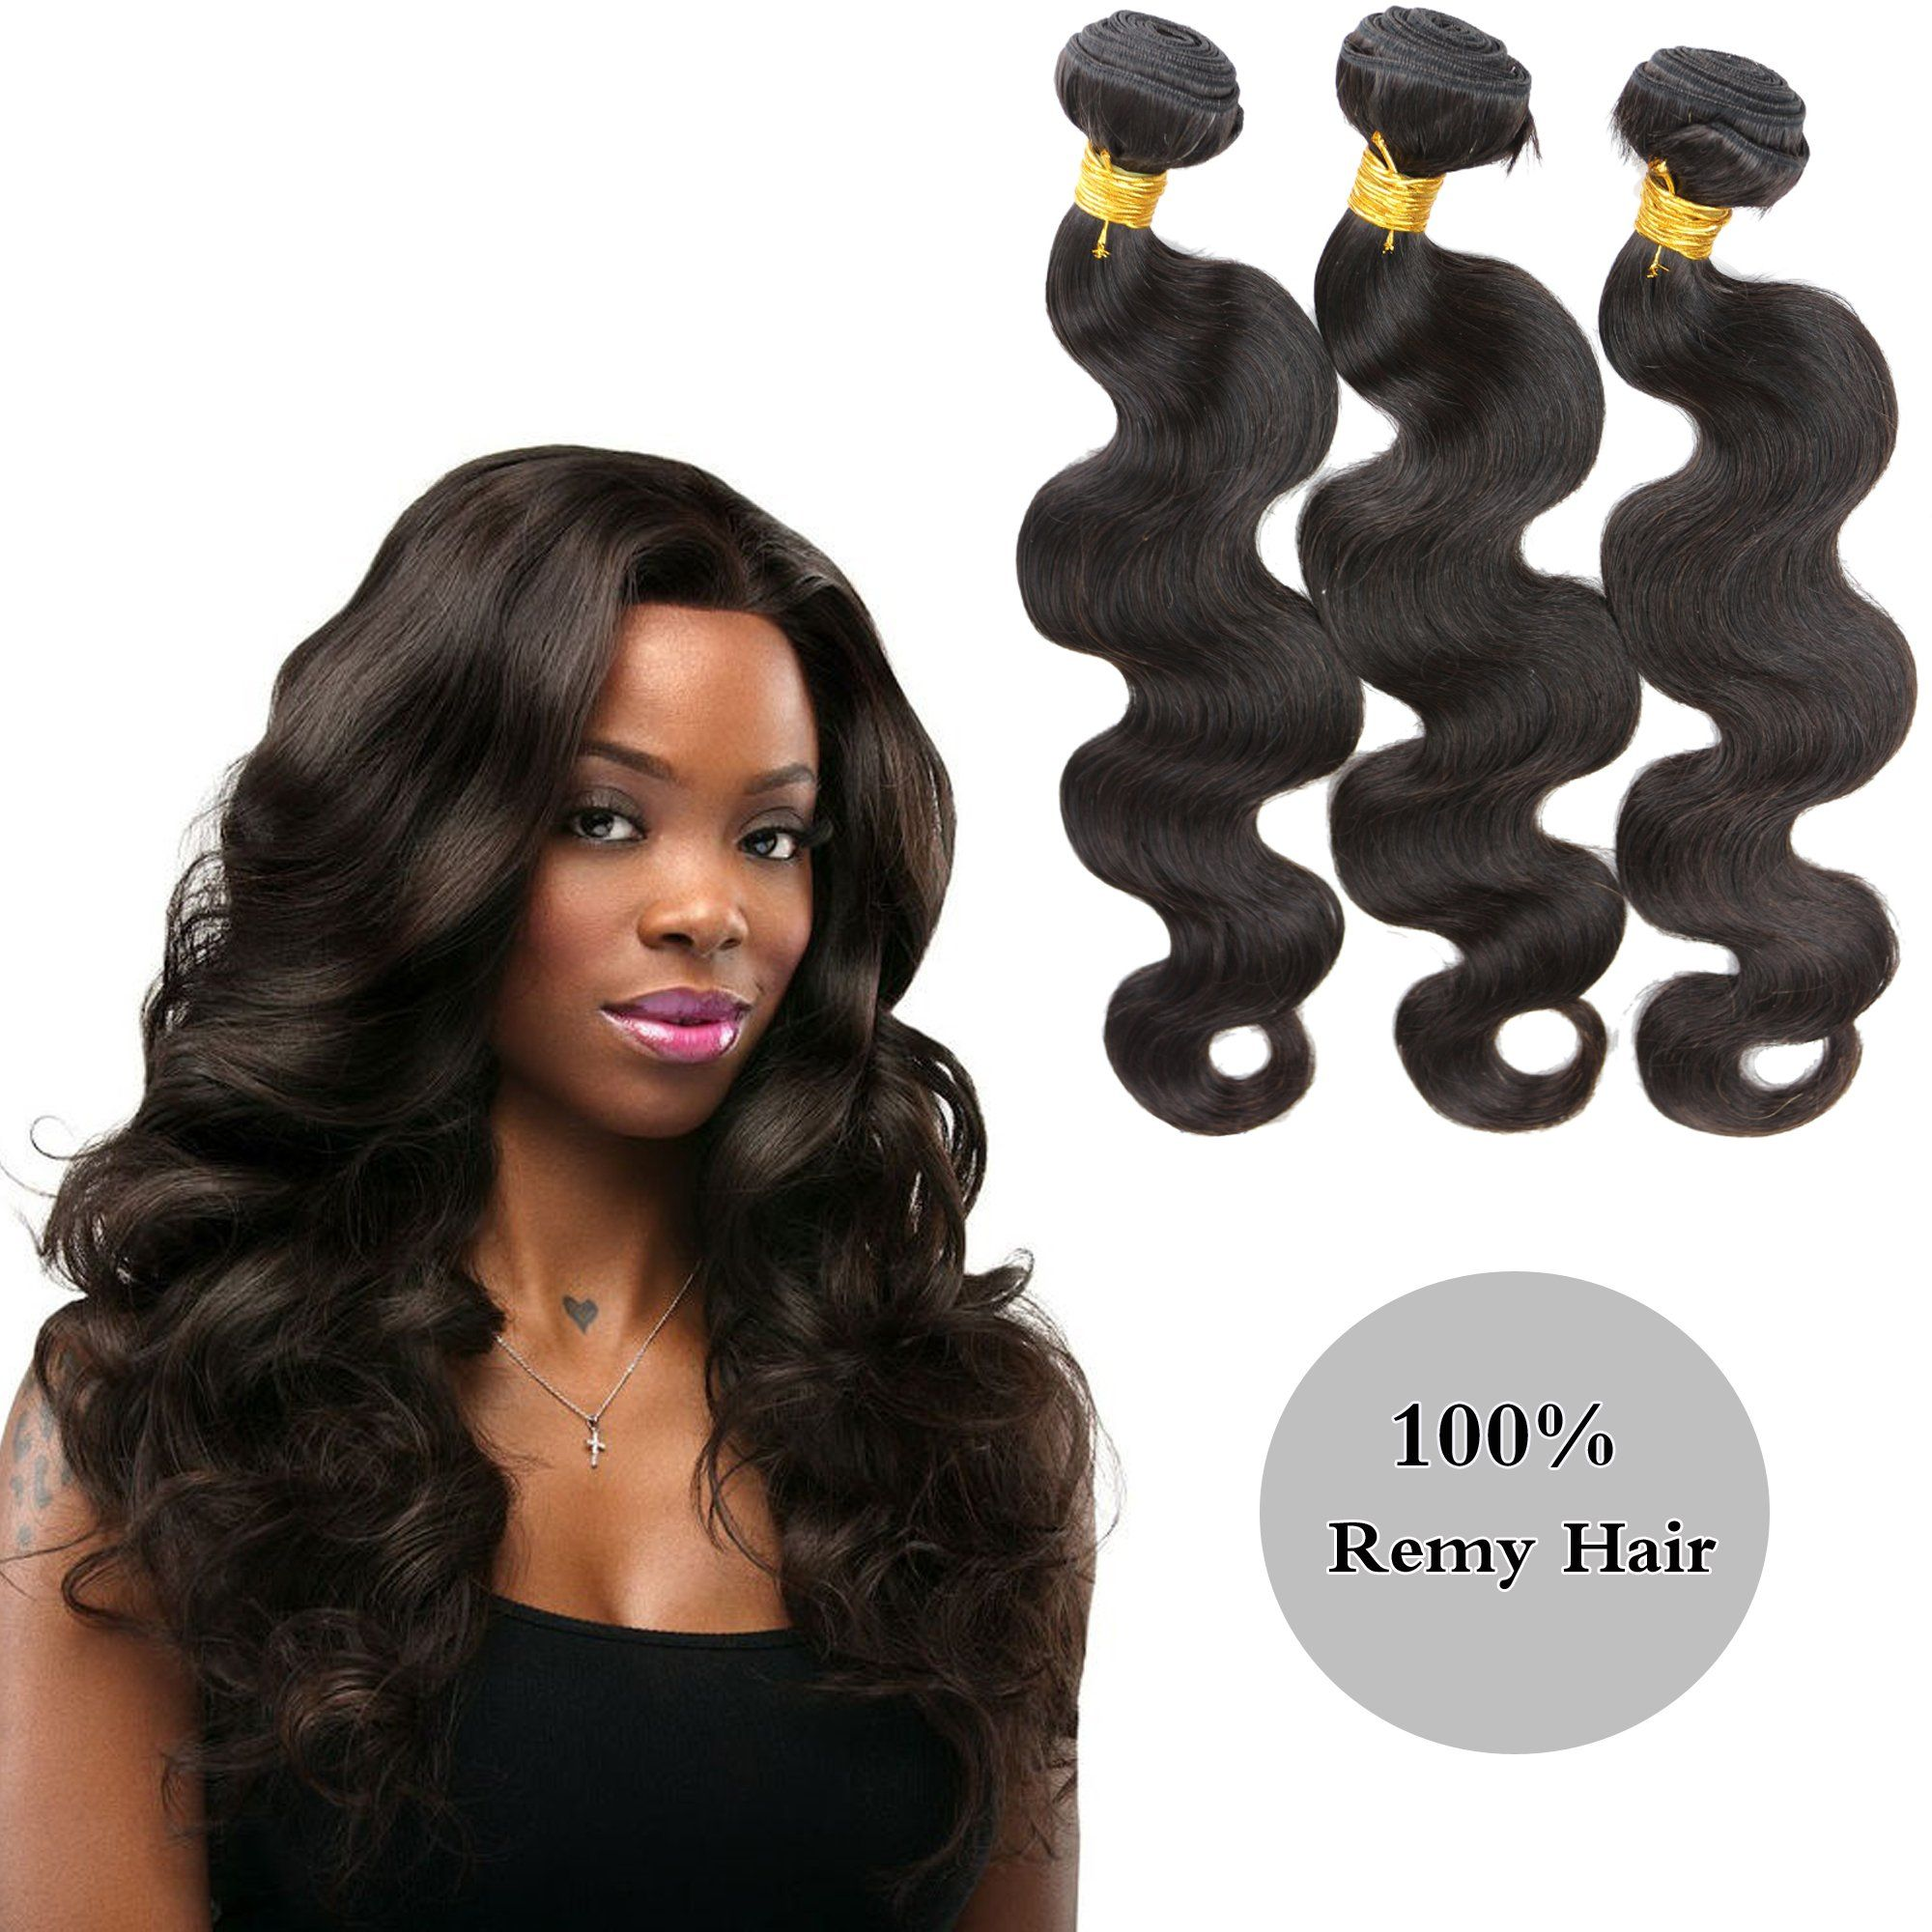 Dreambeauty Best Human Hair Weave Unprocessed Brazilian Hair